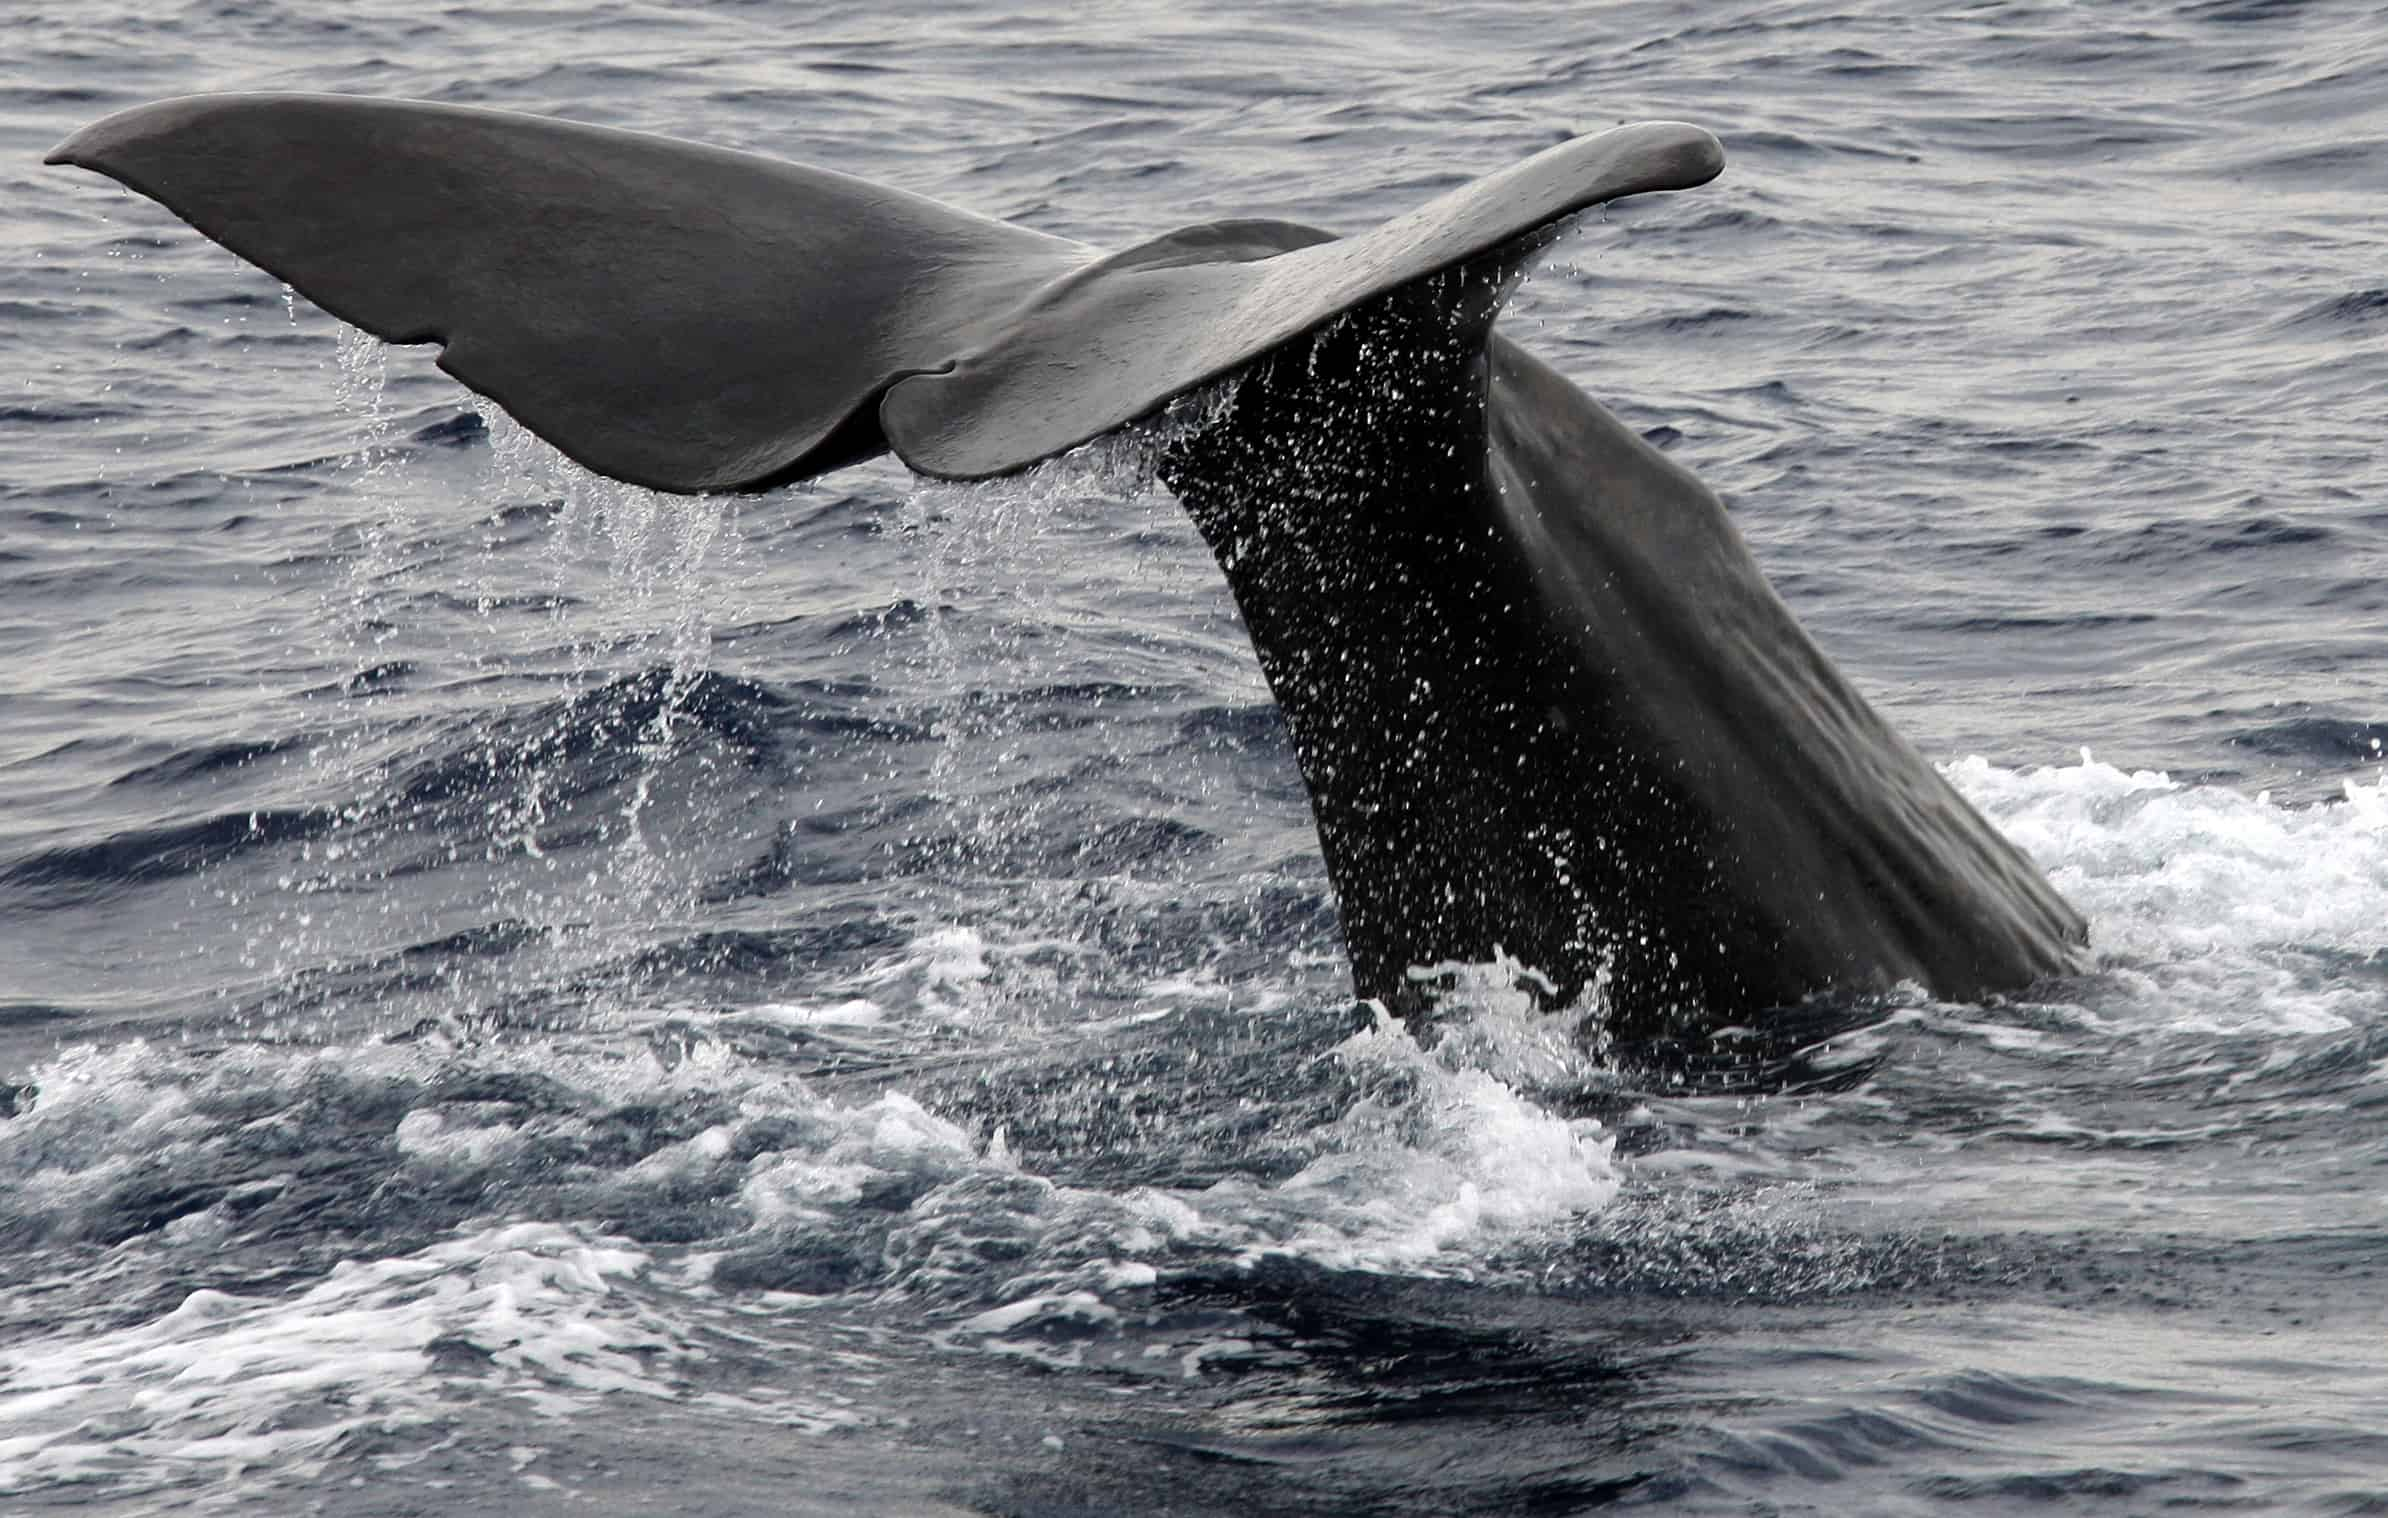 An 18-meter-long sperm whale swims in the Mediterranean.